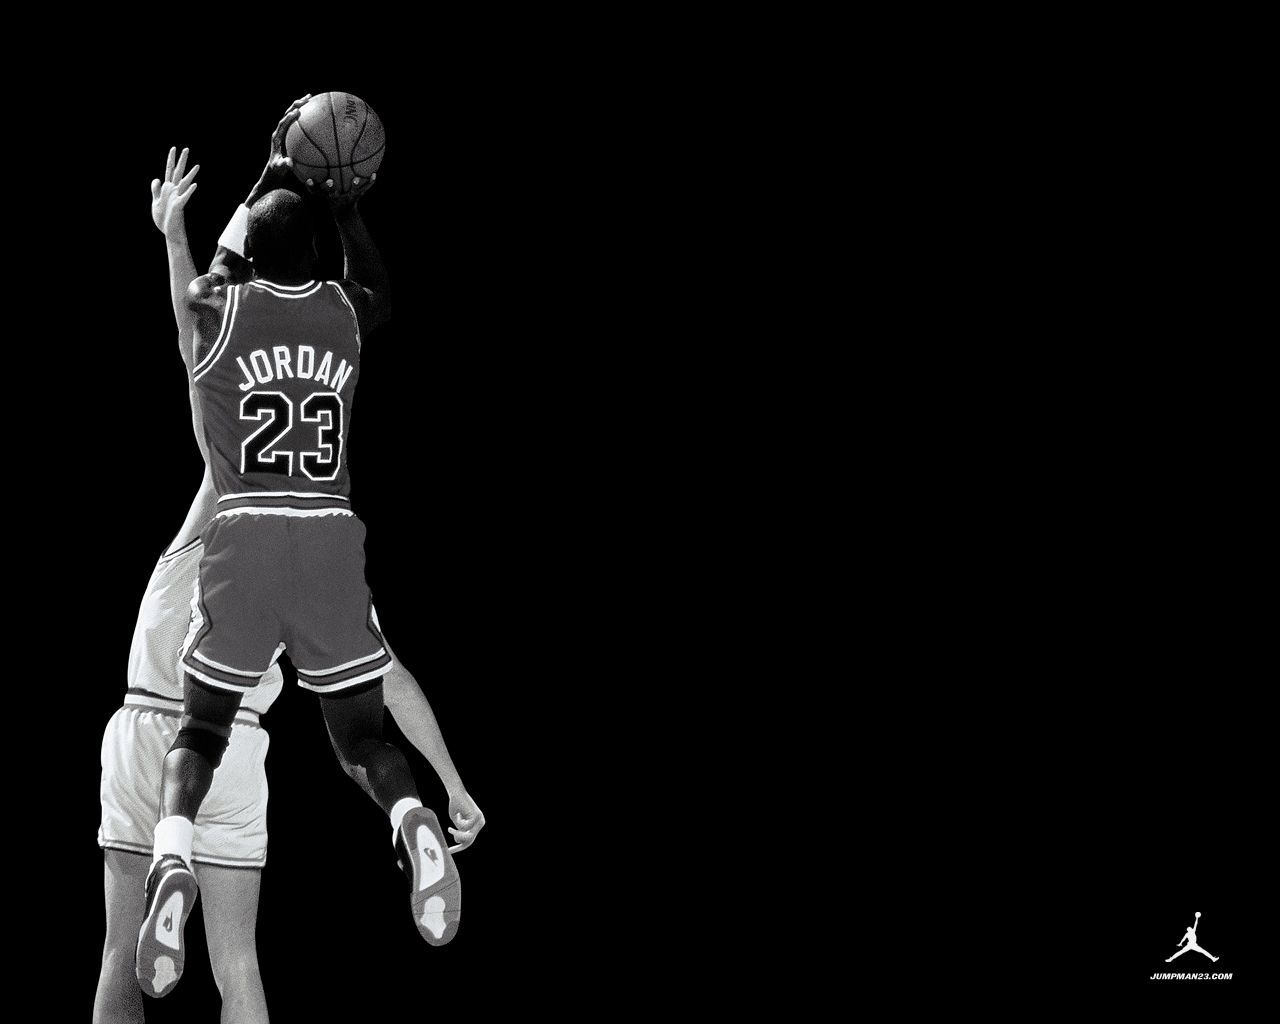 Michael Jordan Wallpaper 1080p: Best Images About Desktop Wallpapers On Pinterest Jordans